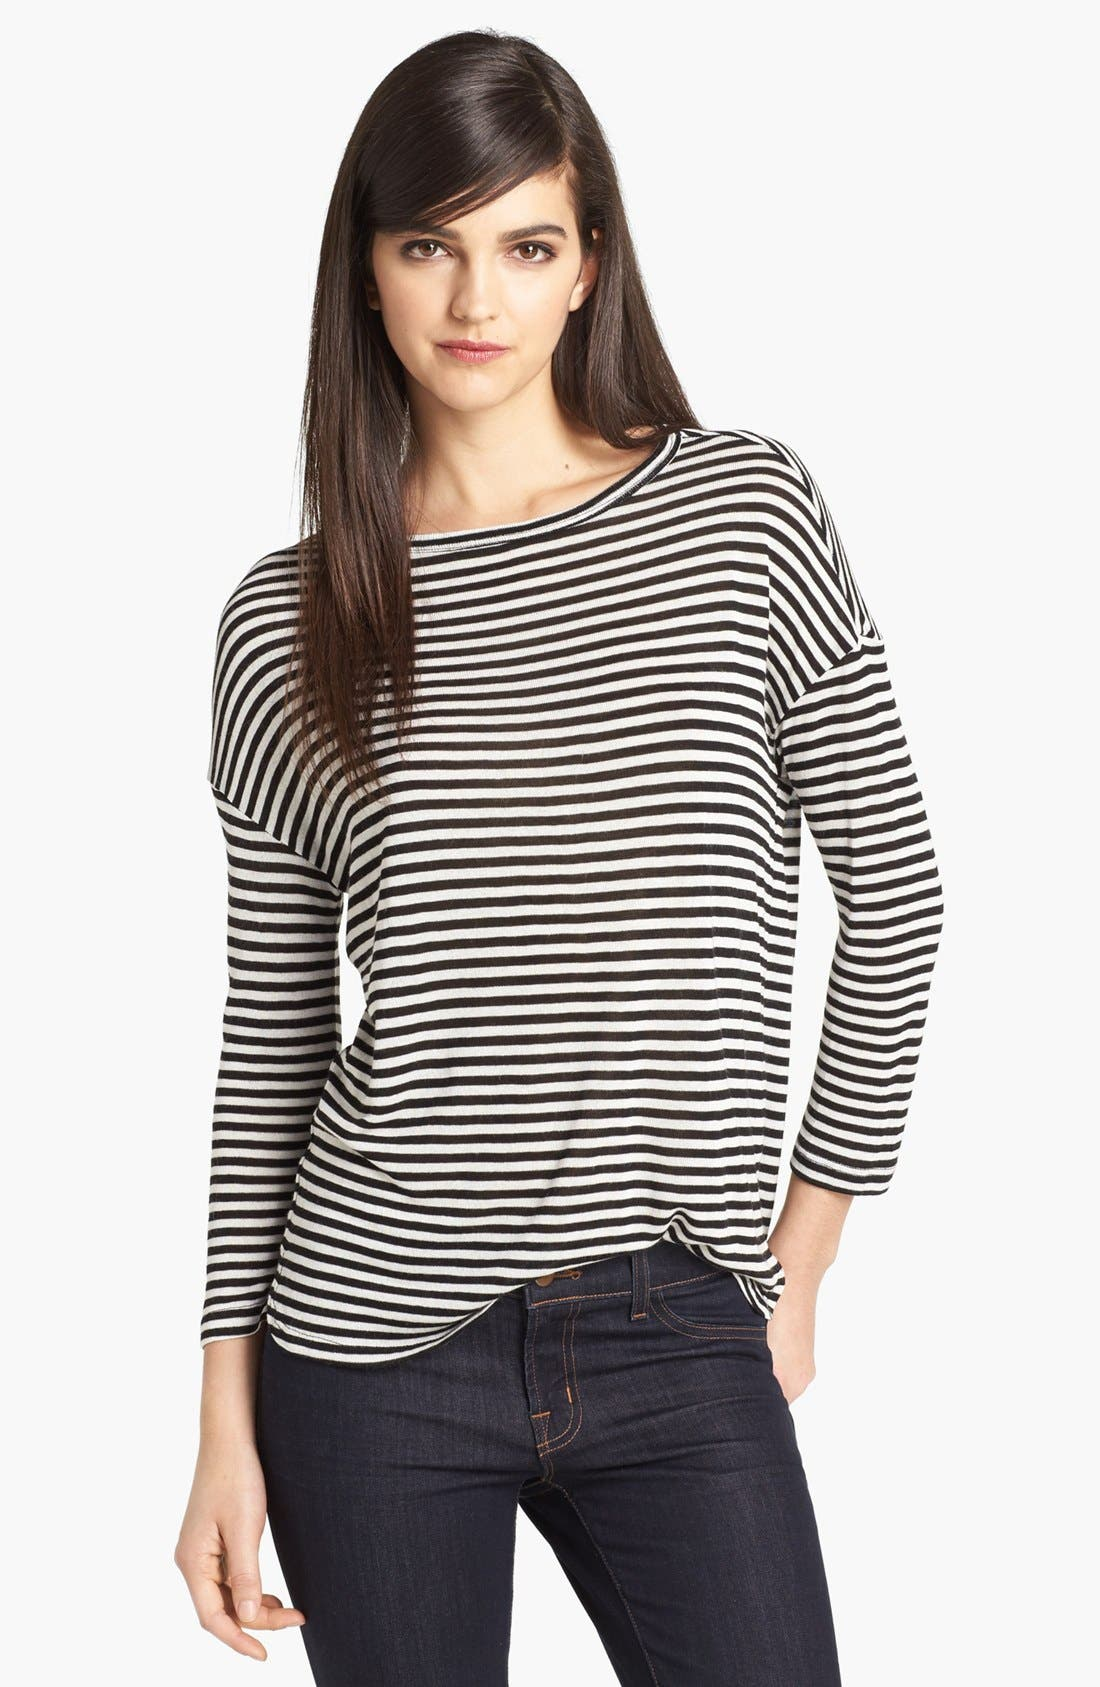 Alternate Image 1 Selected - Soft Joie 'Nash' Stripe Top